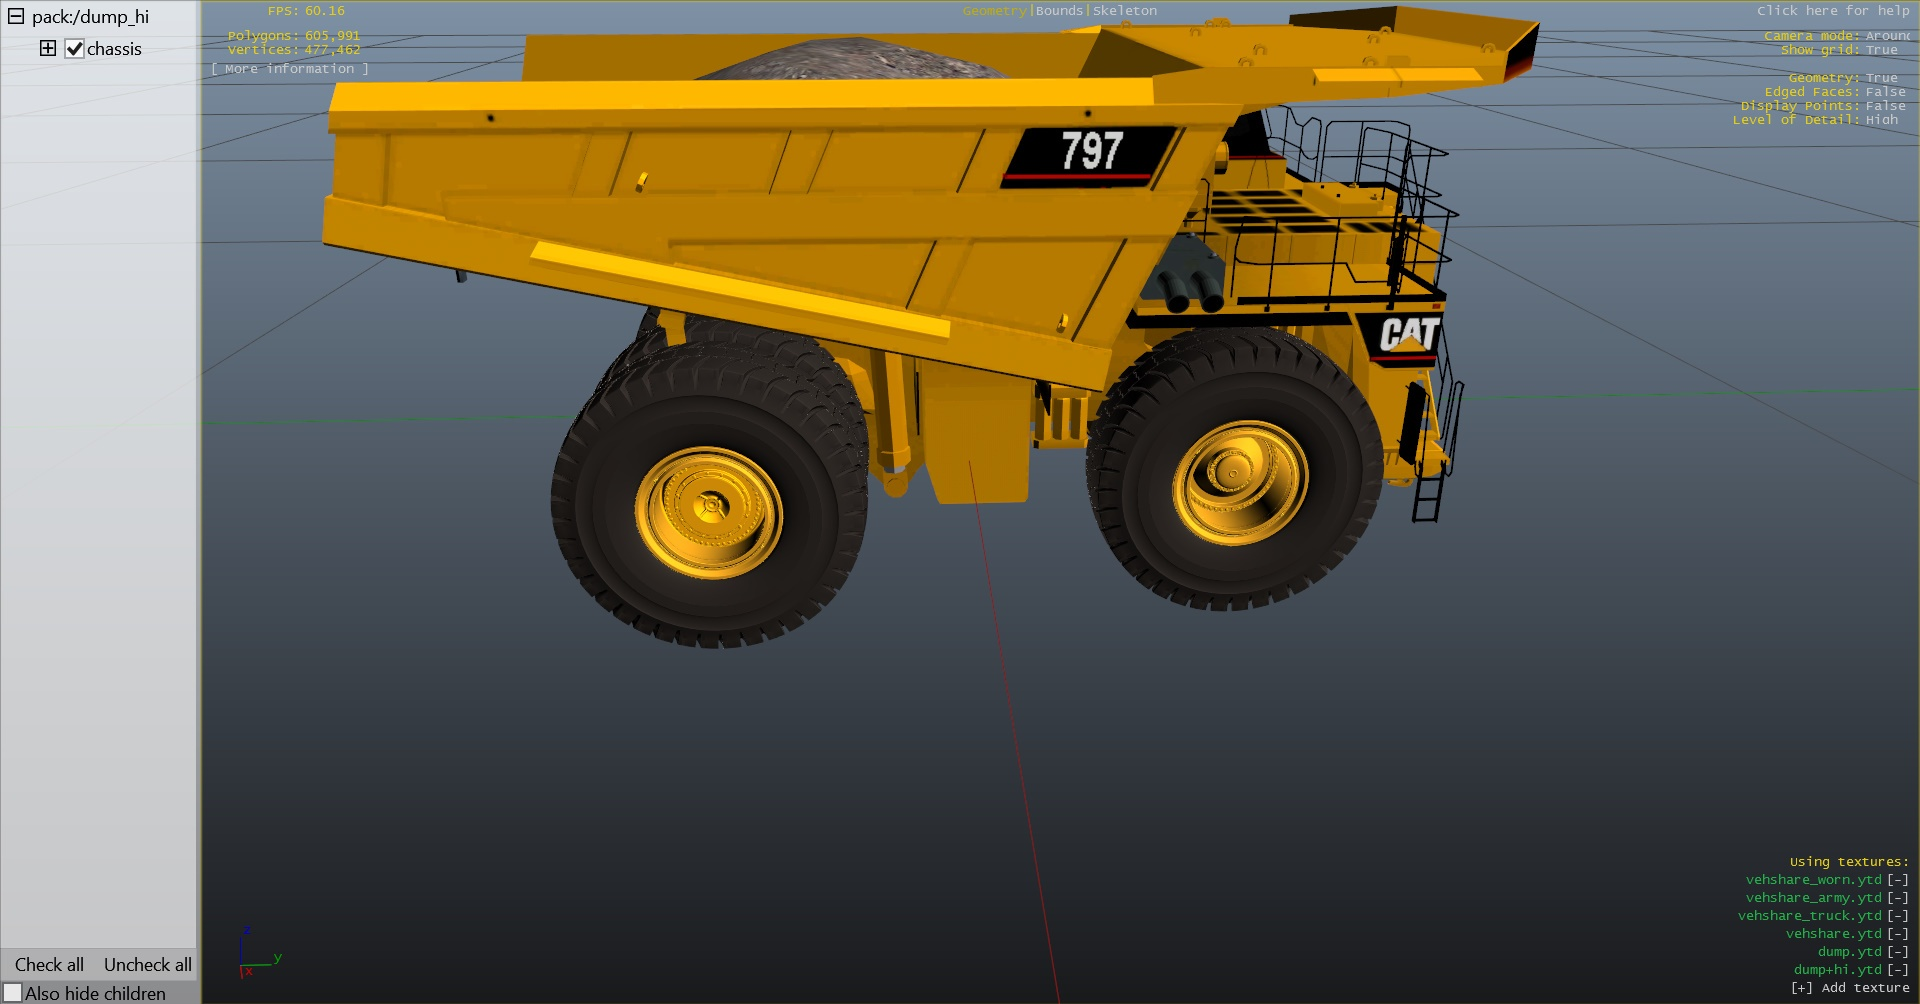 2016 Caterpillar 797 photo - 3